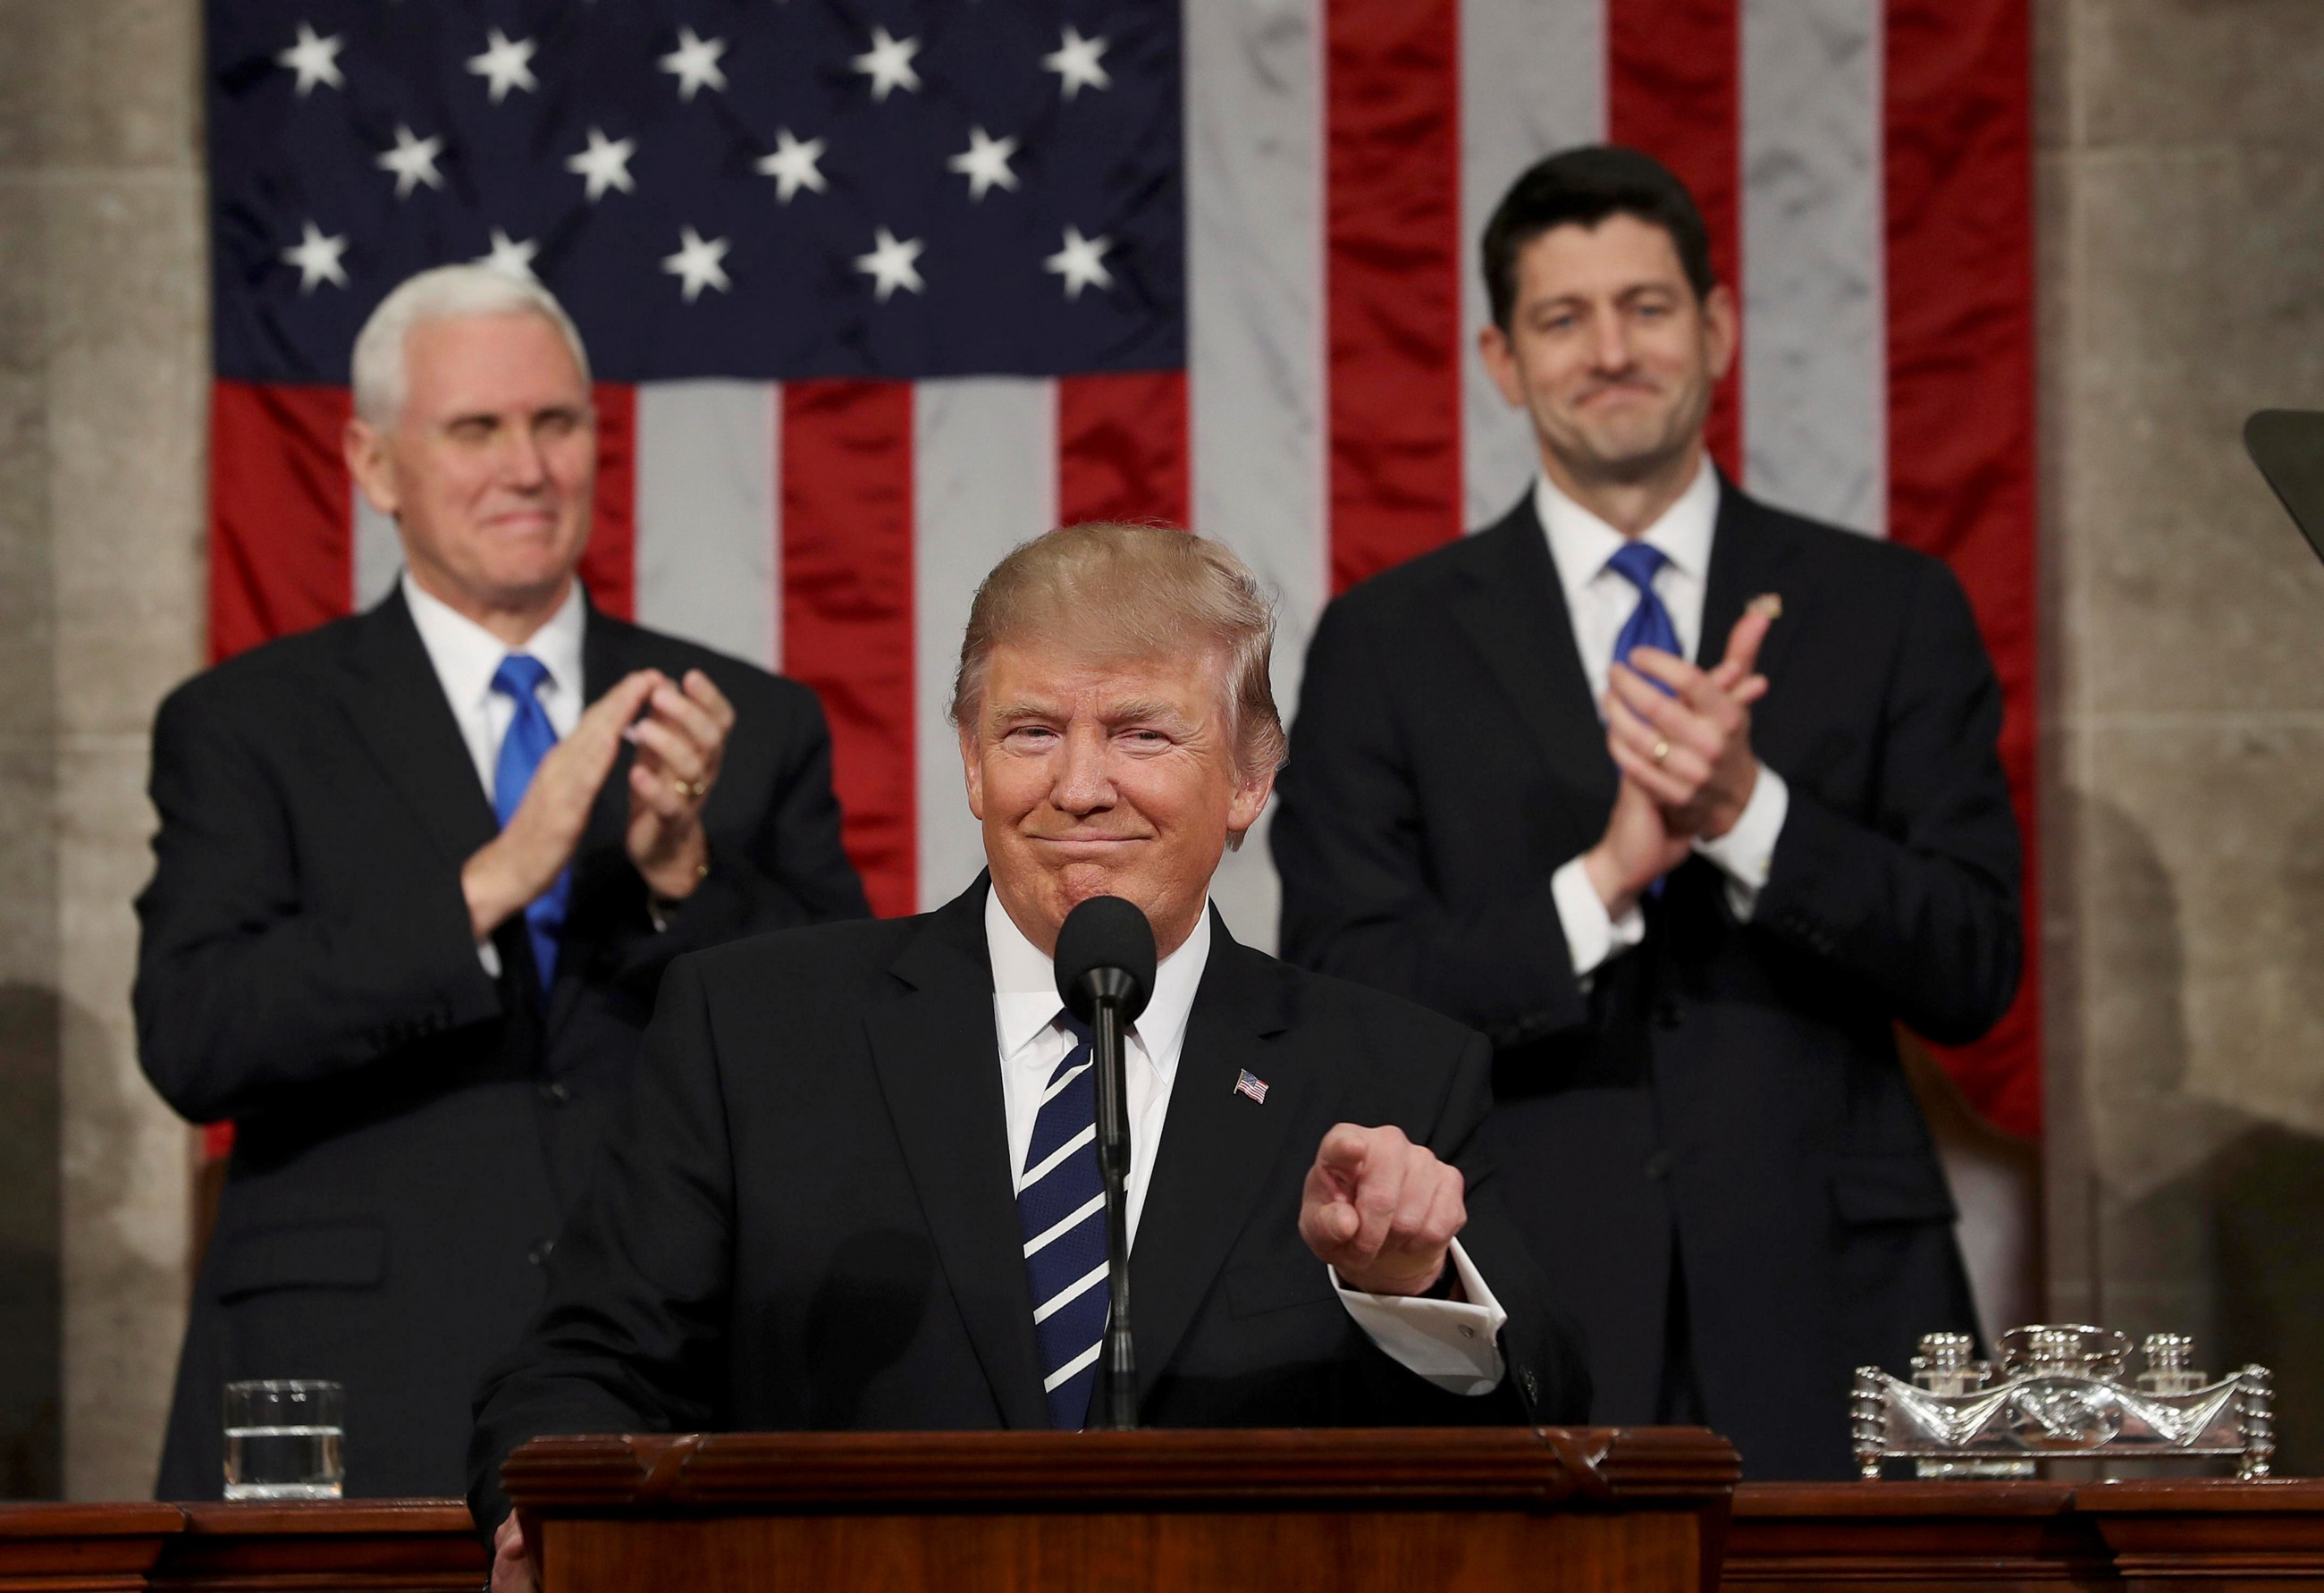 President Trump offers a more hopeful tone but few specifics